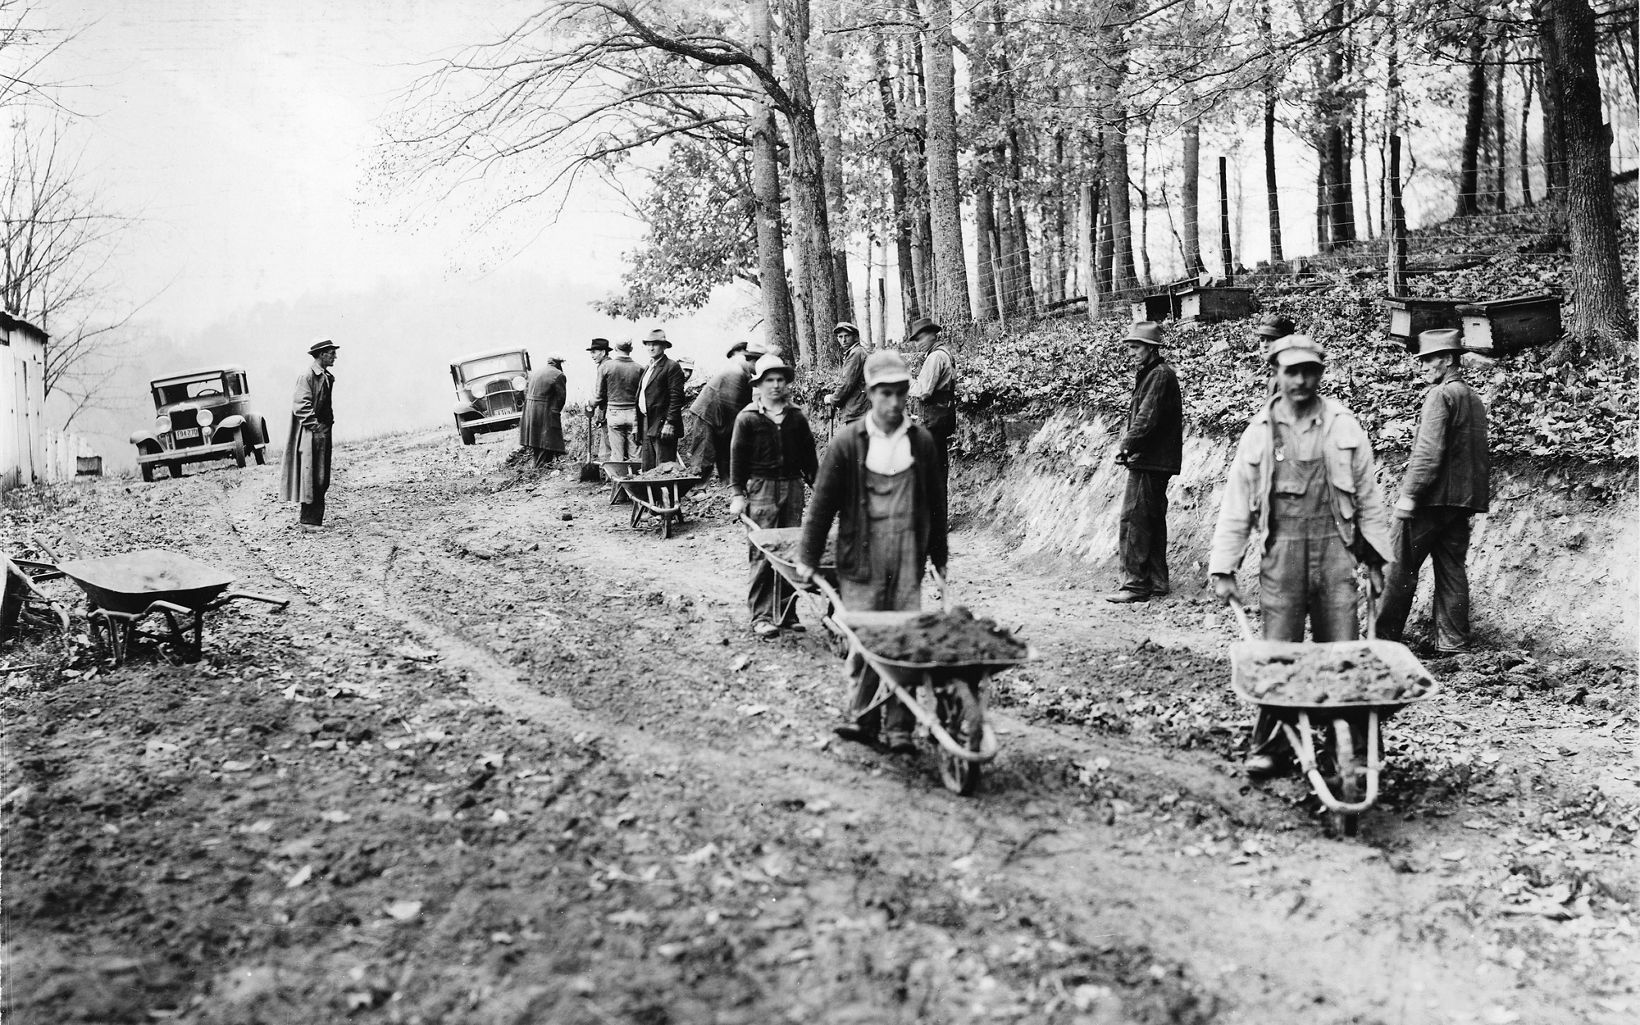 An historic image of workers building infrastructure needed for a dam.